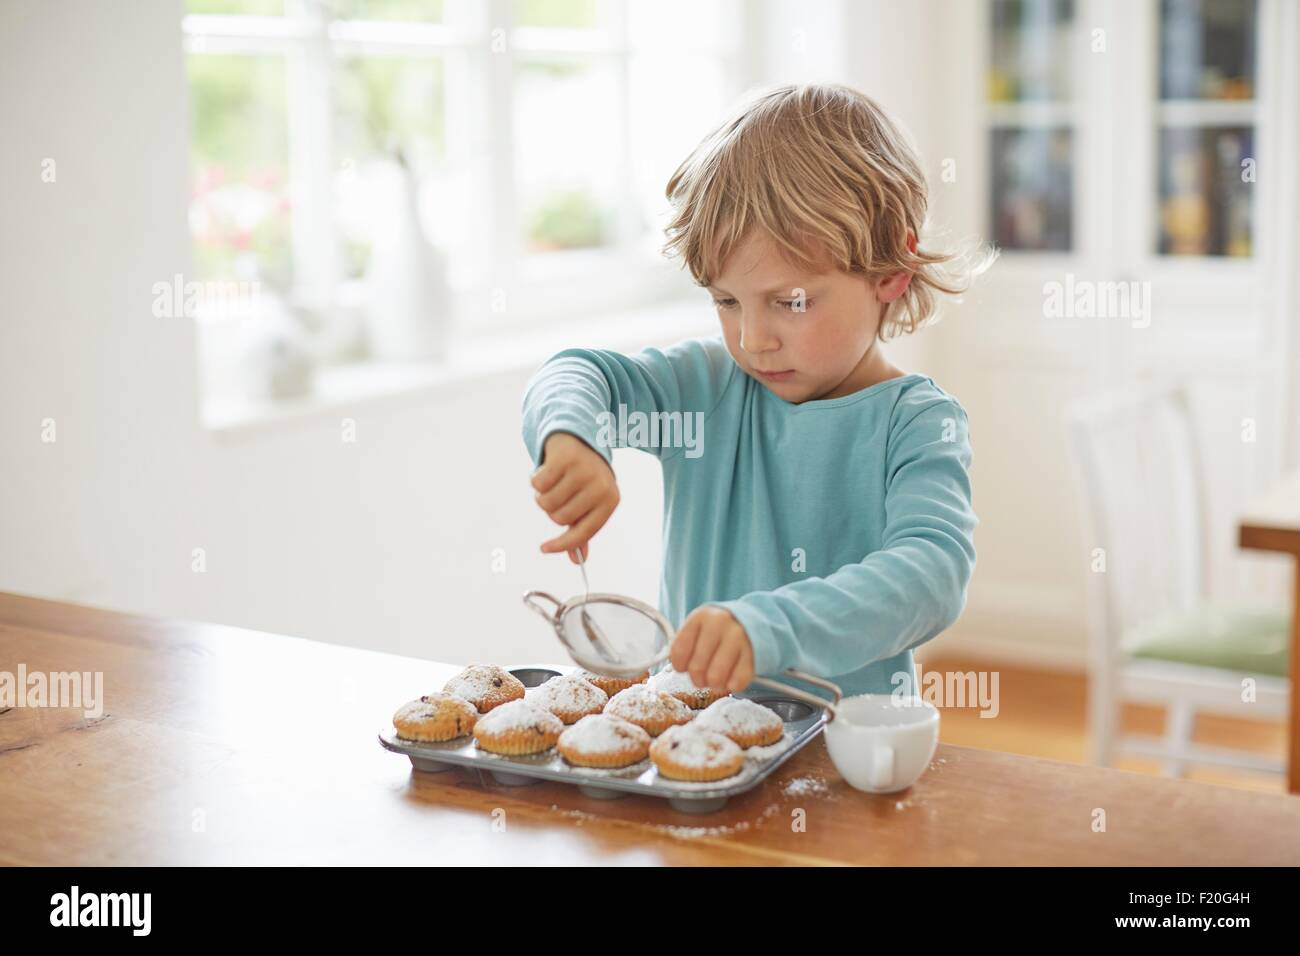 Boy making cupcakes in kitchen - Stock Image